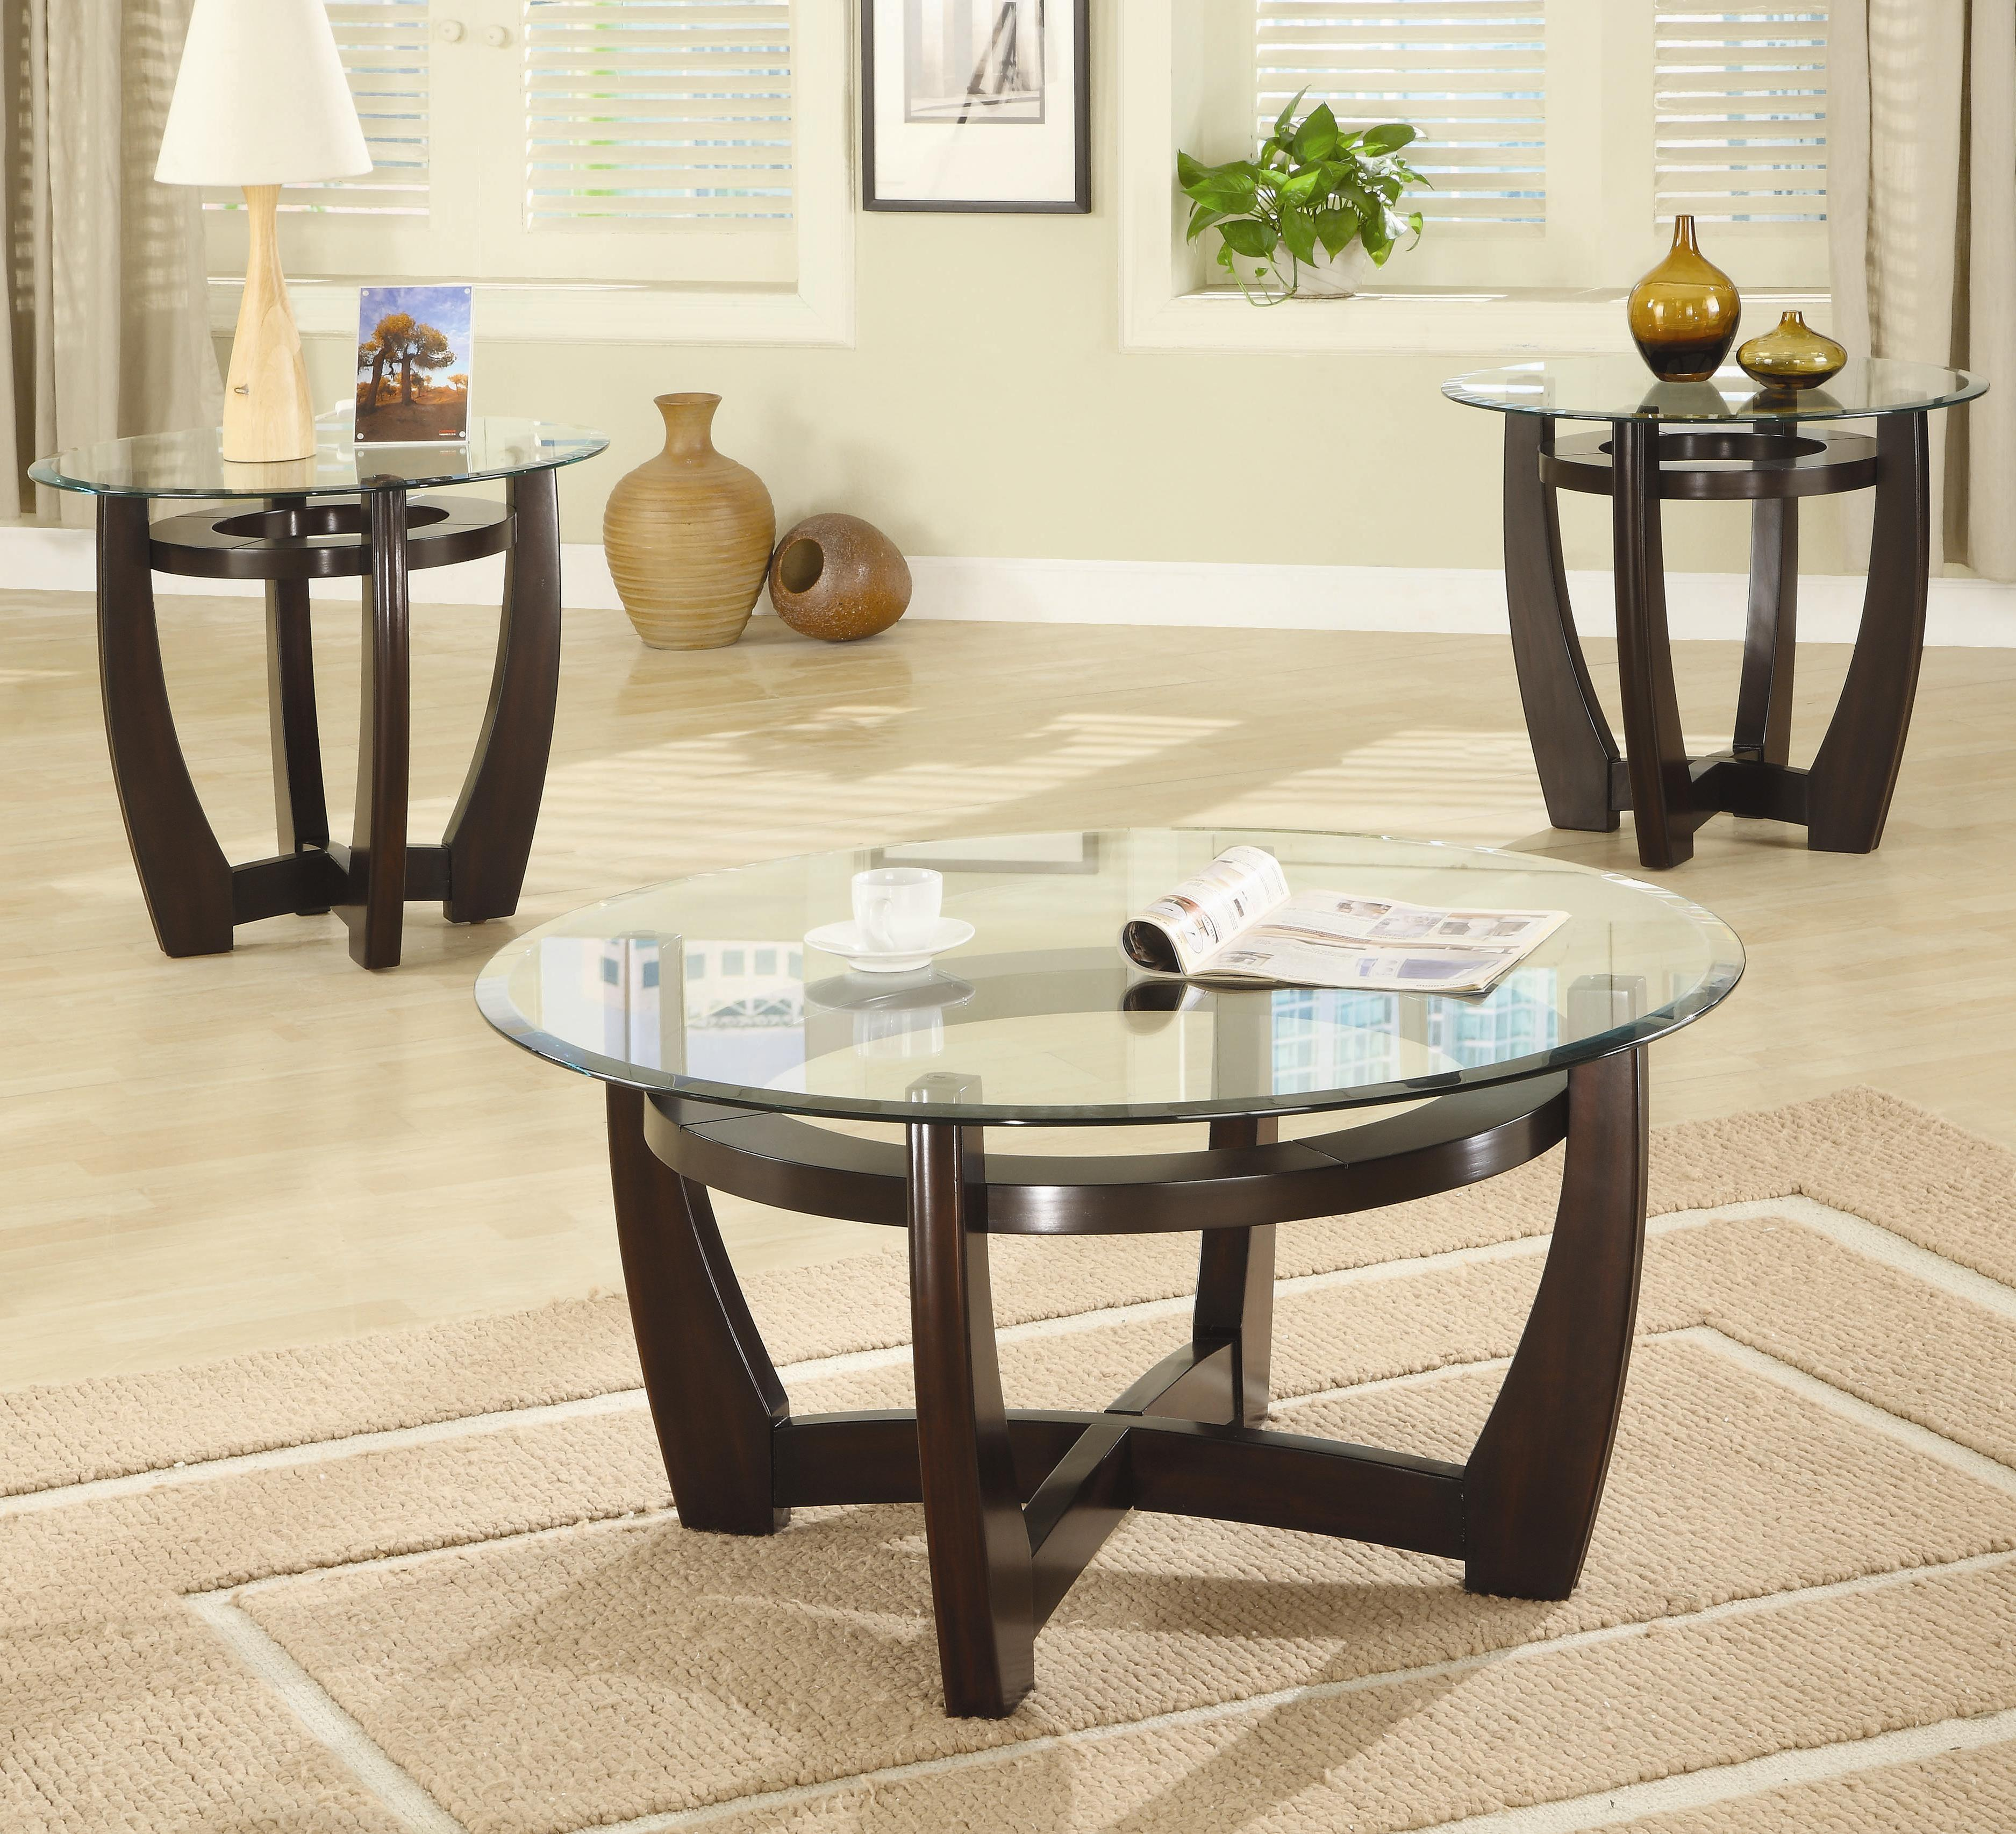 coffee table piece sets under stunning blackish brown round rustic glass and wood laminated ideas clearance accent tables tiffany leadlight lamps pier one rugs jcpenney floor